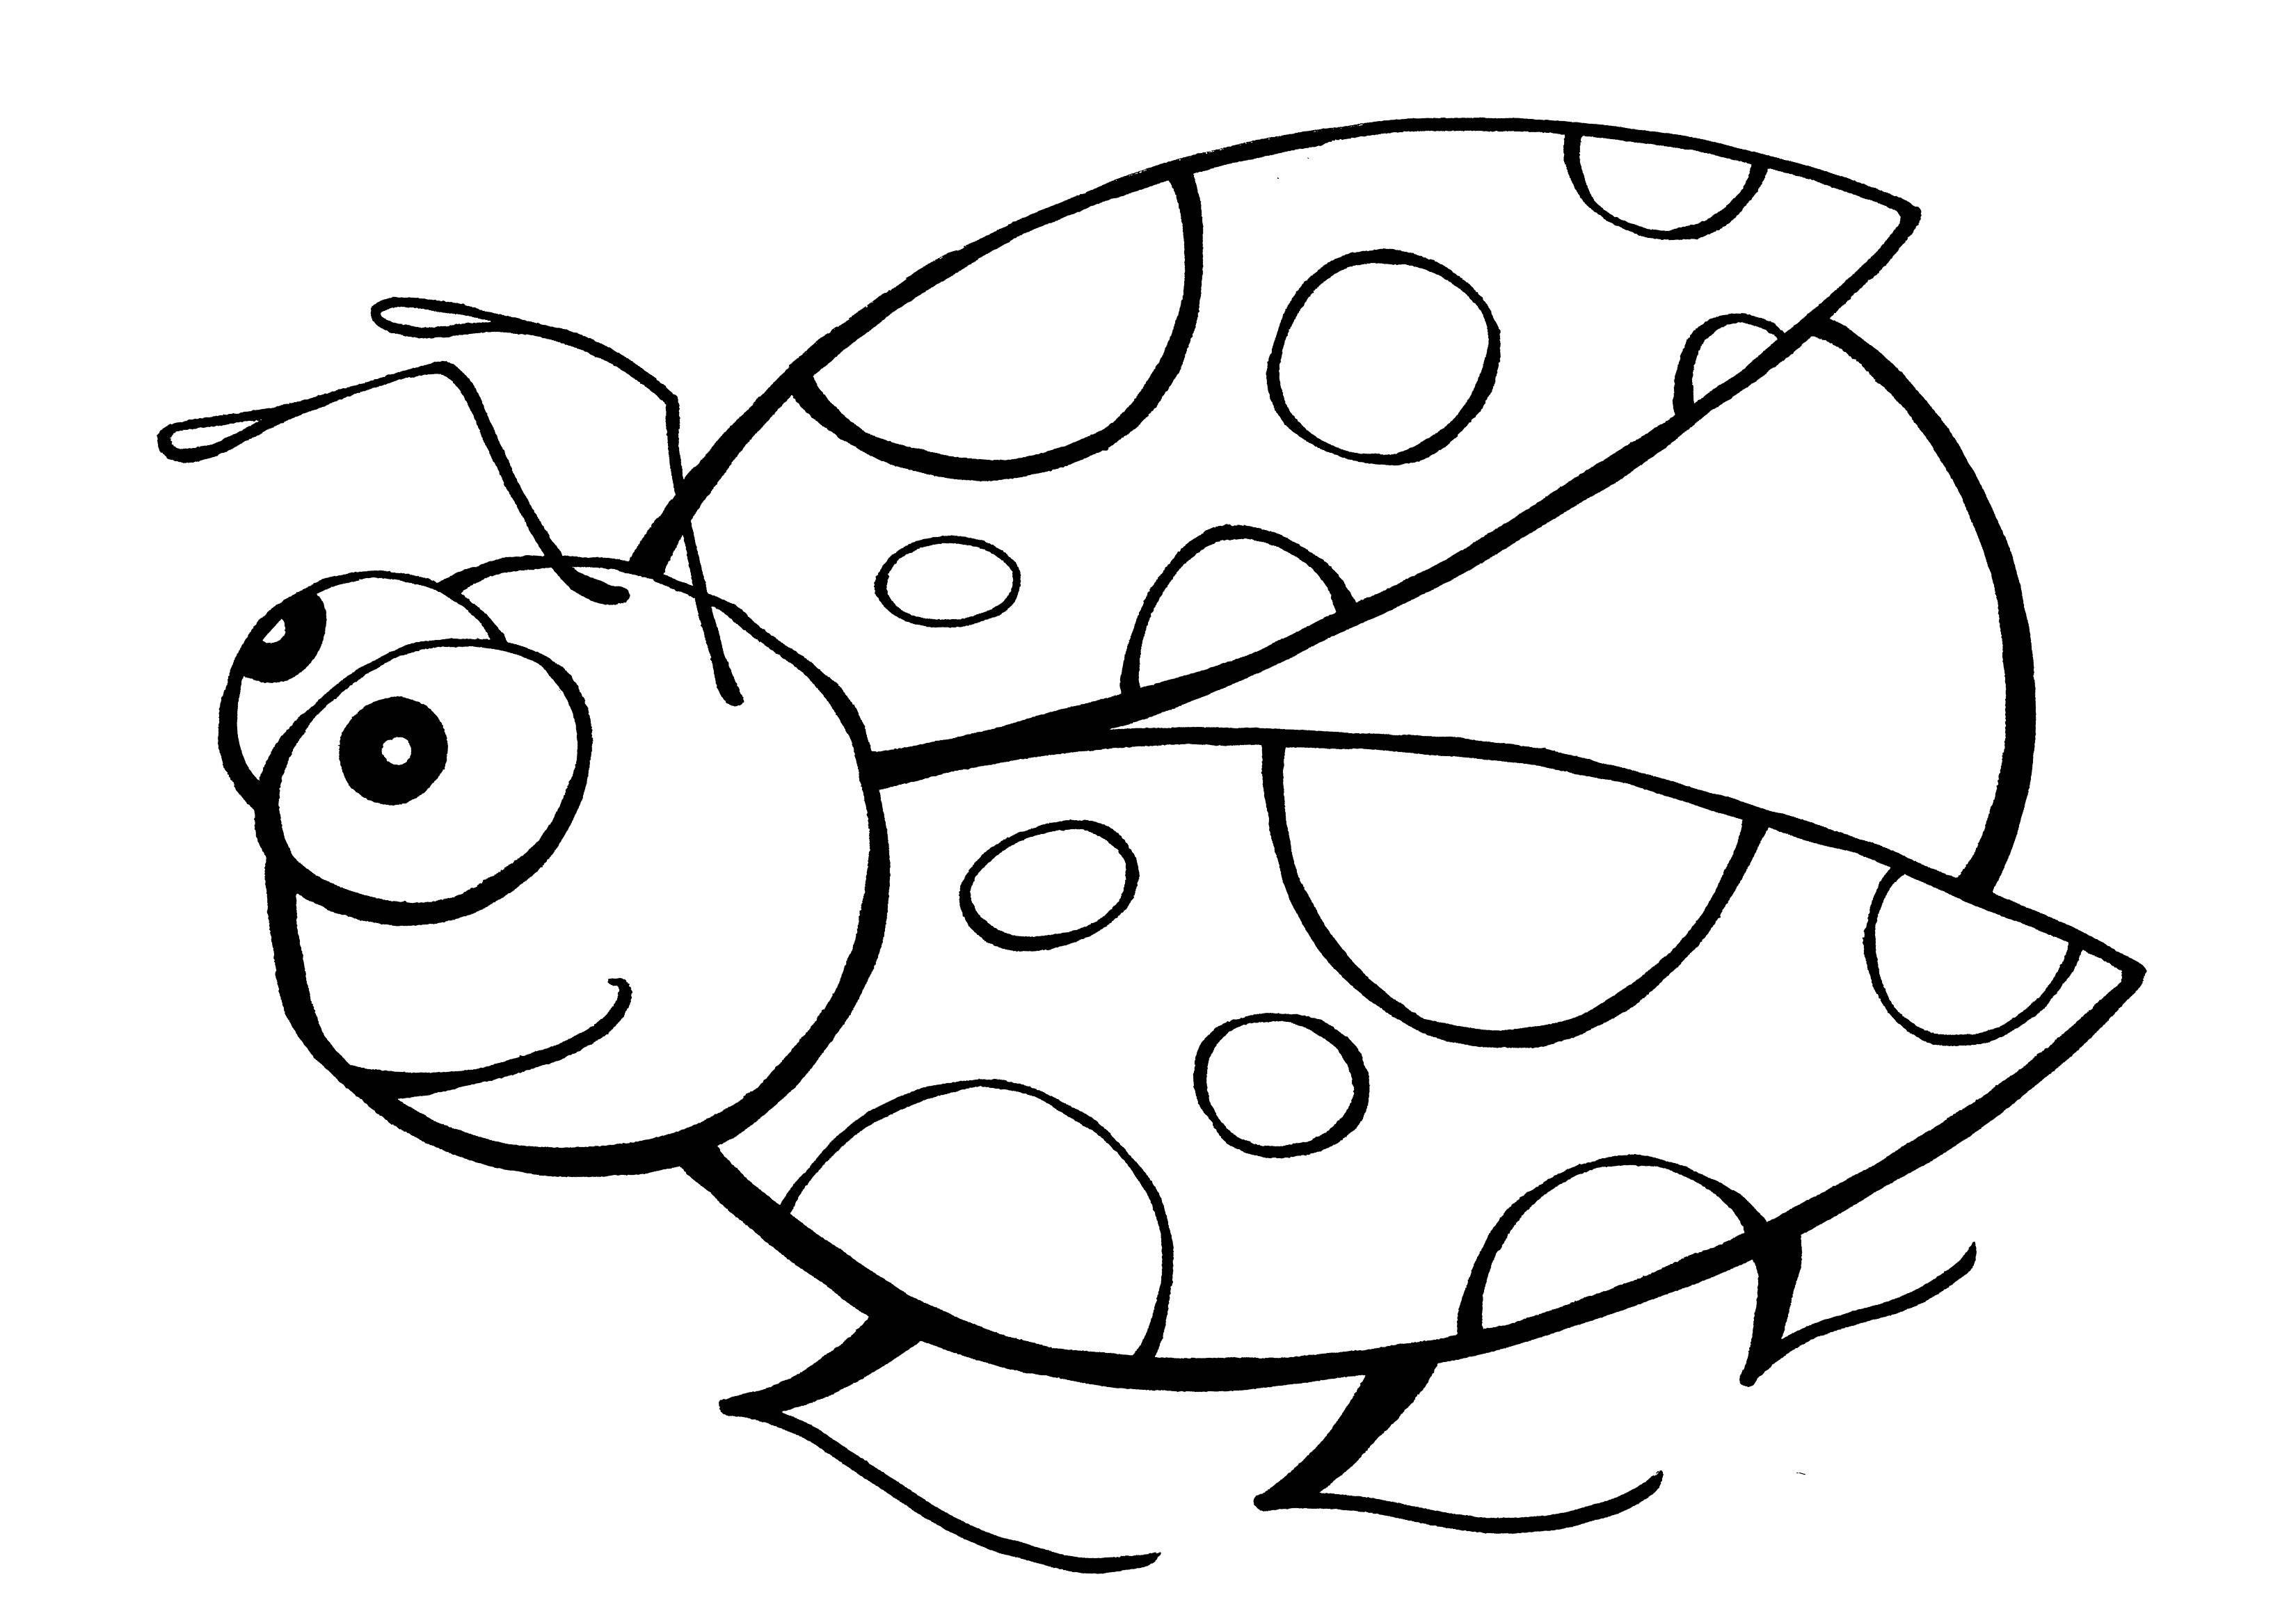 insect coloring sheets insect coloring pages to download and print for free insect sheets coloring